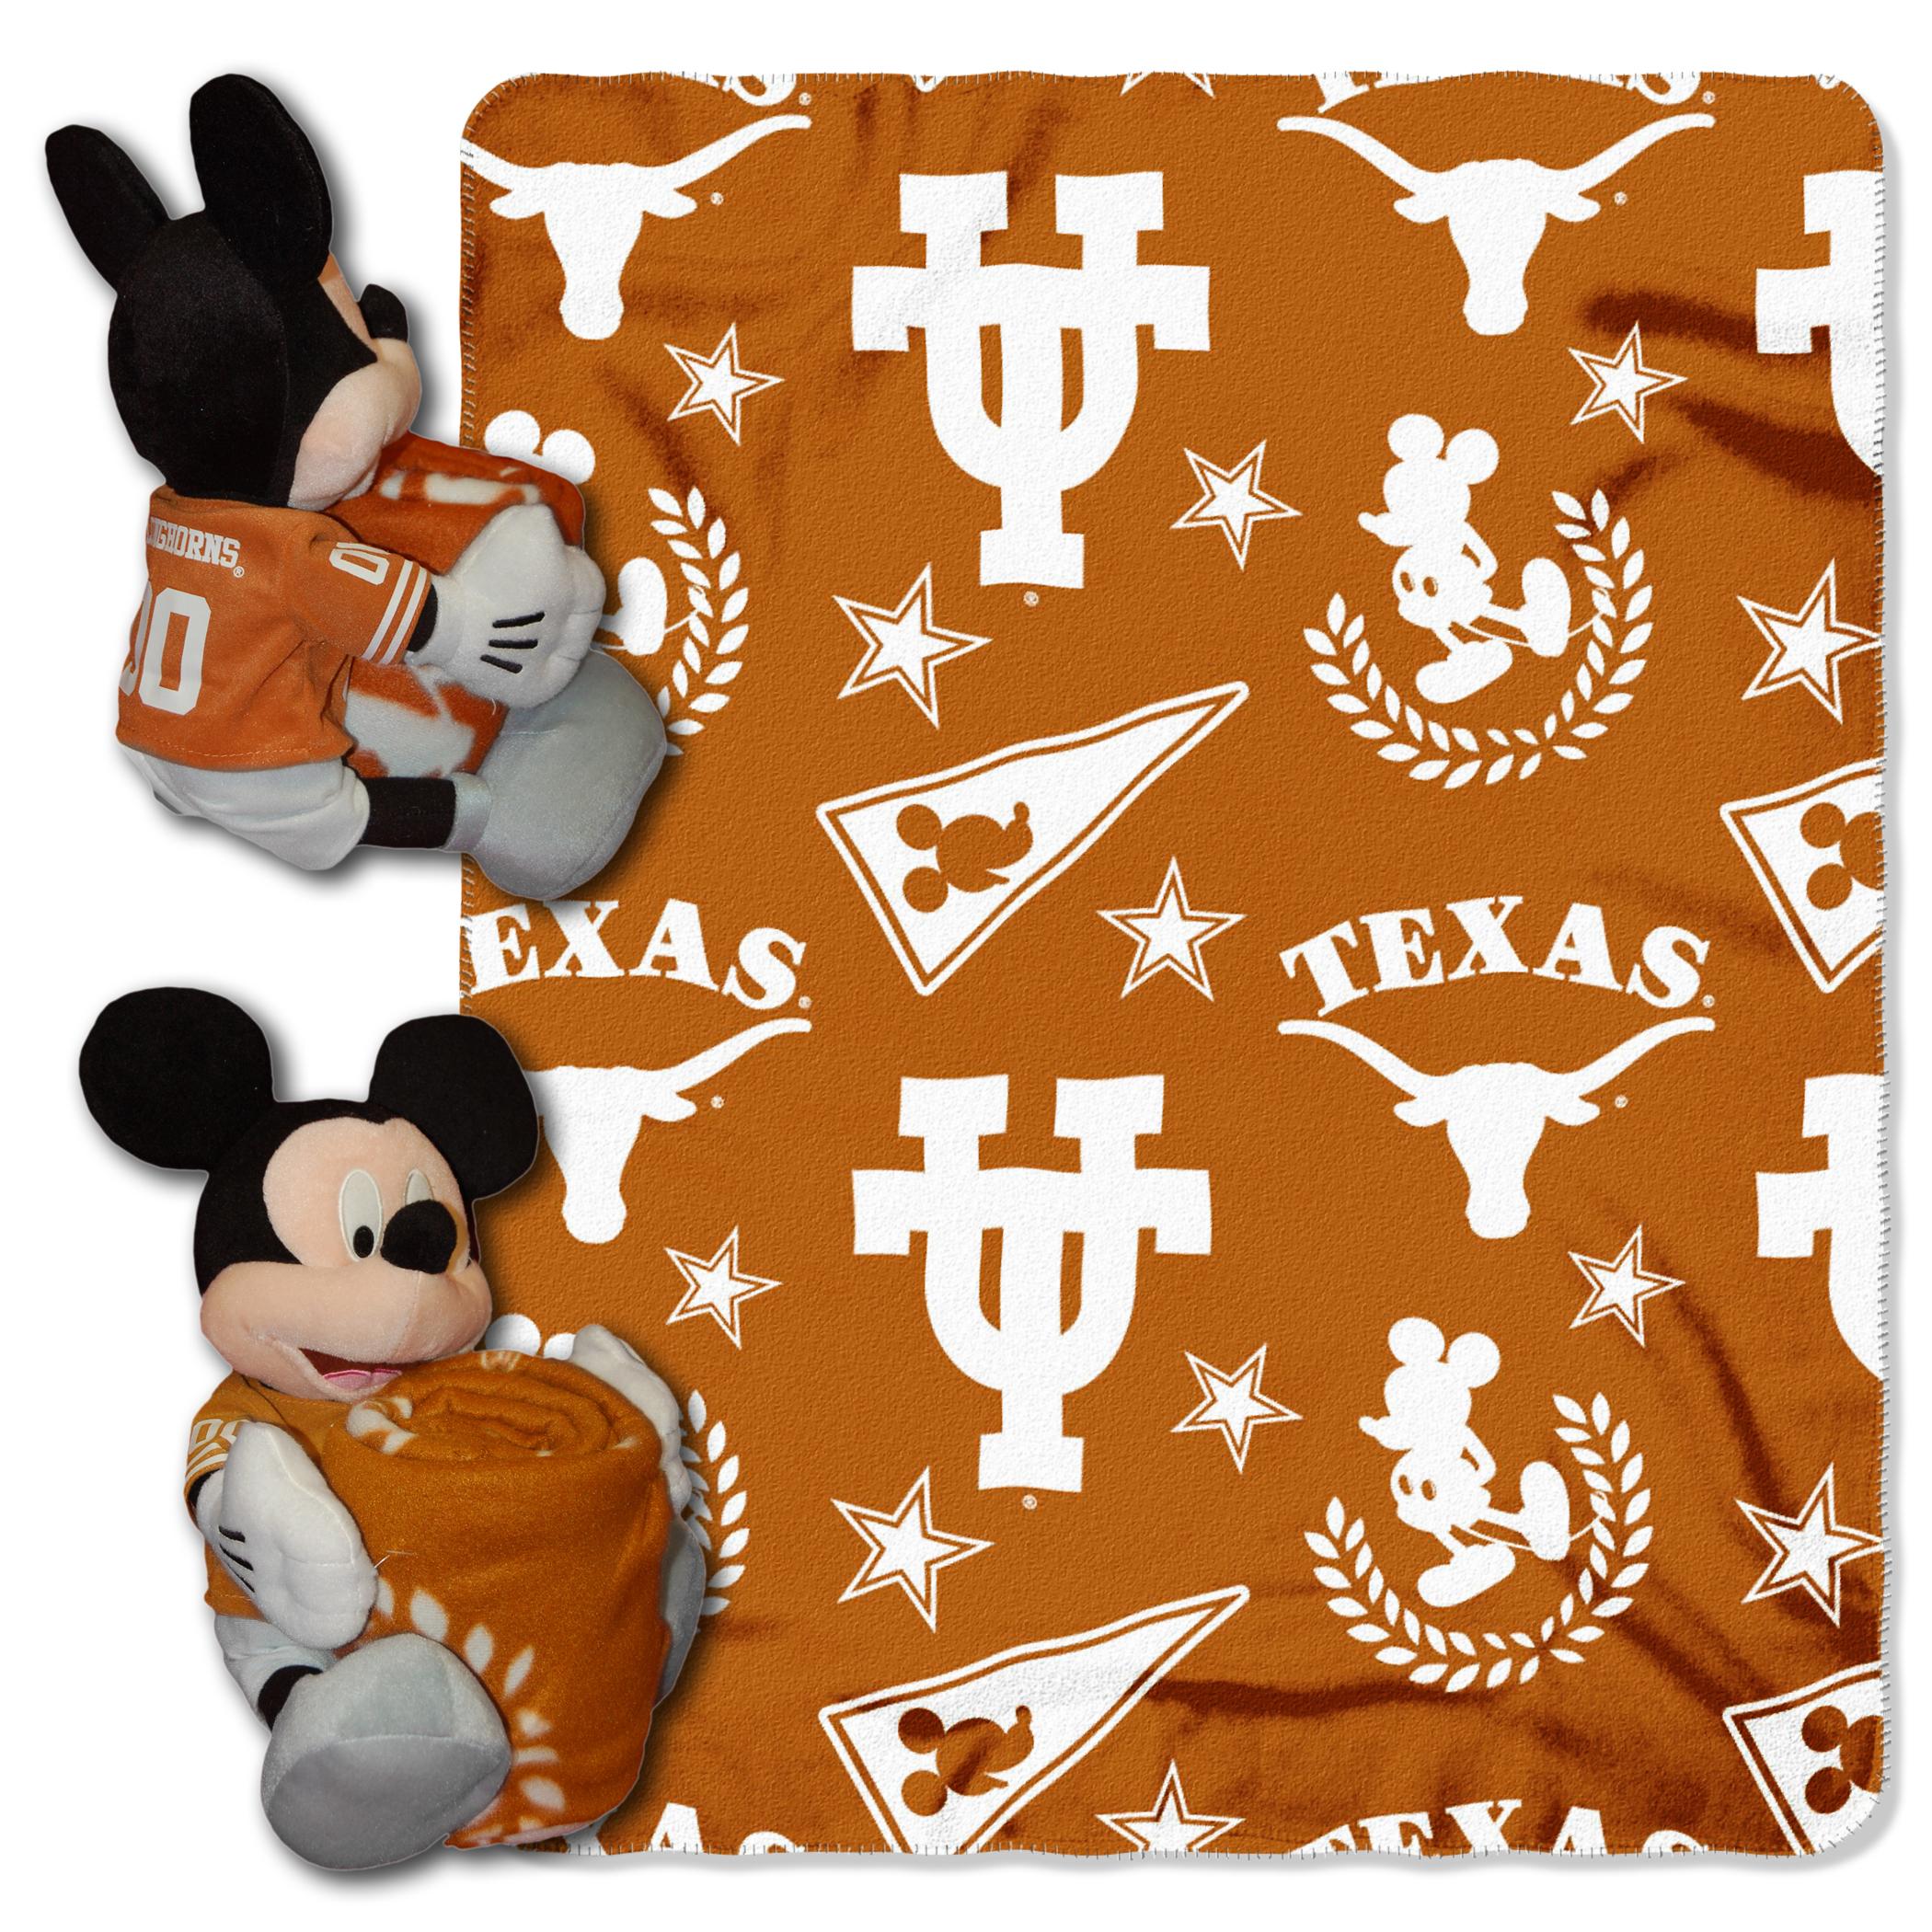 """Official NCAA and Disney Cobrand Texas Longhorns Mickey Mouse Hugger Character Shaped Pillow and 40""""x 50"""" Fleece Throw Set"""